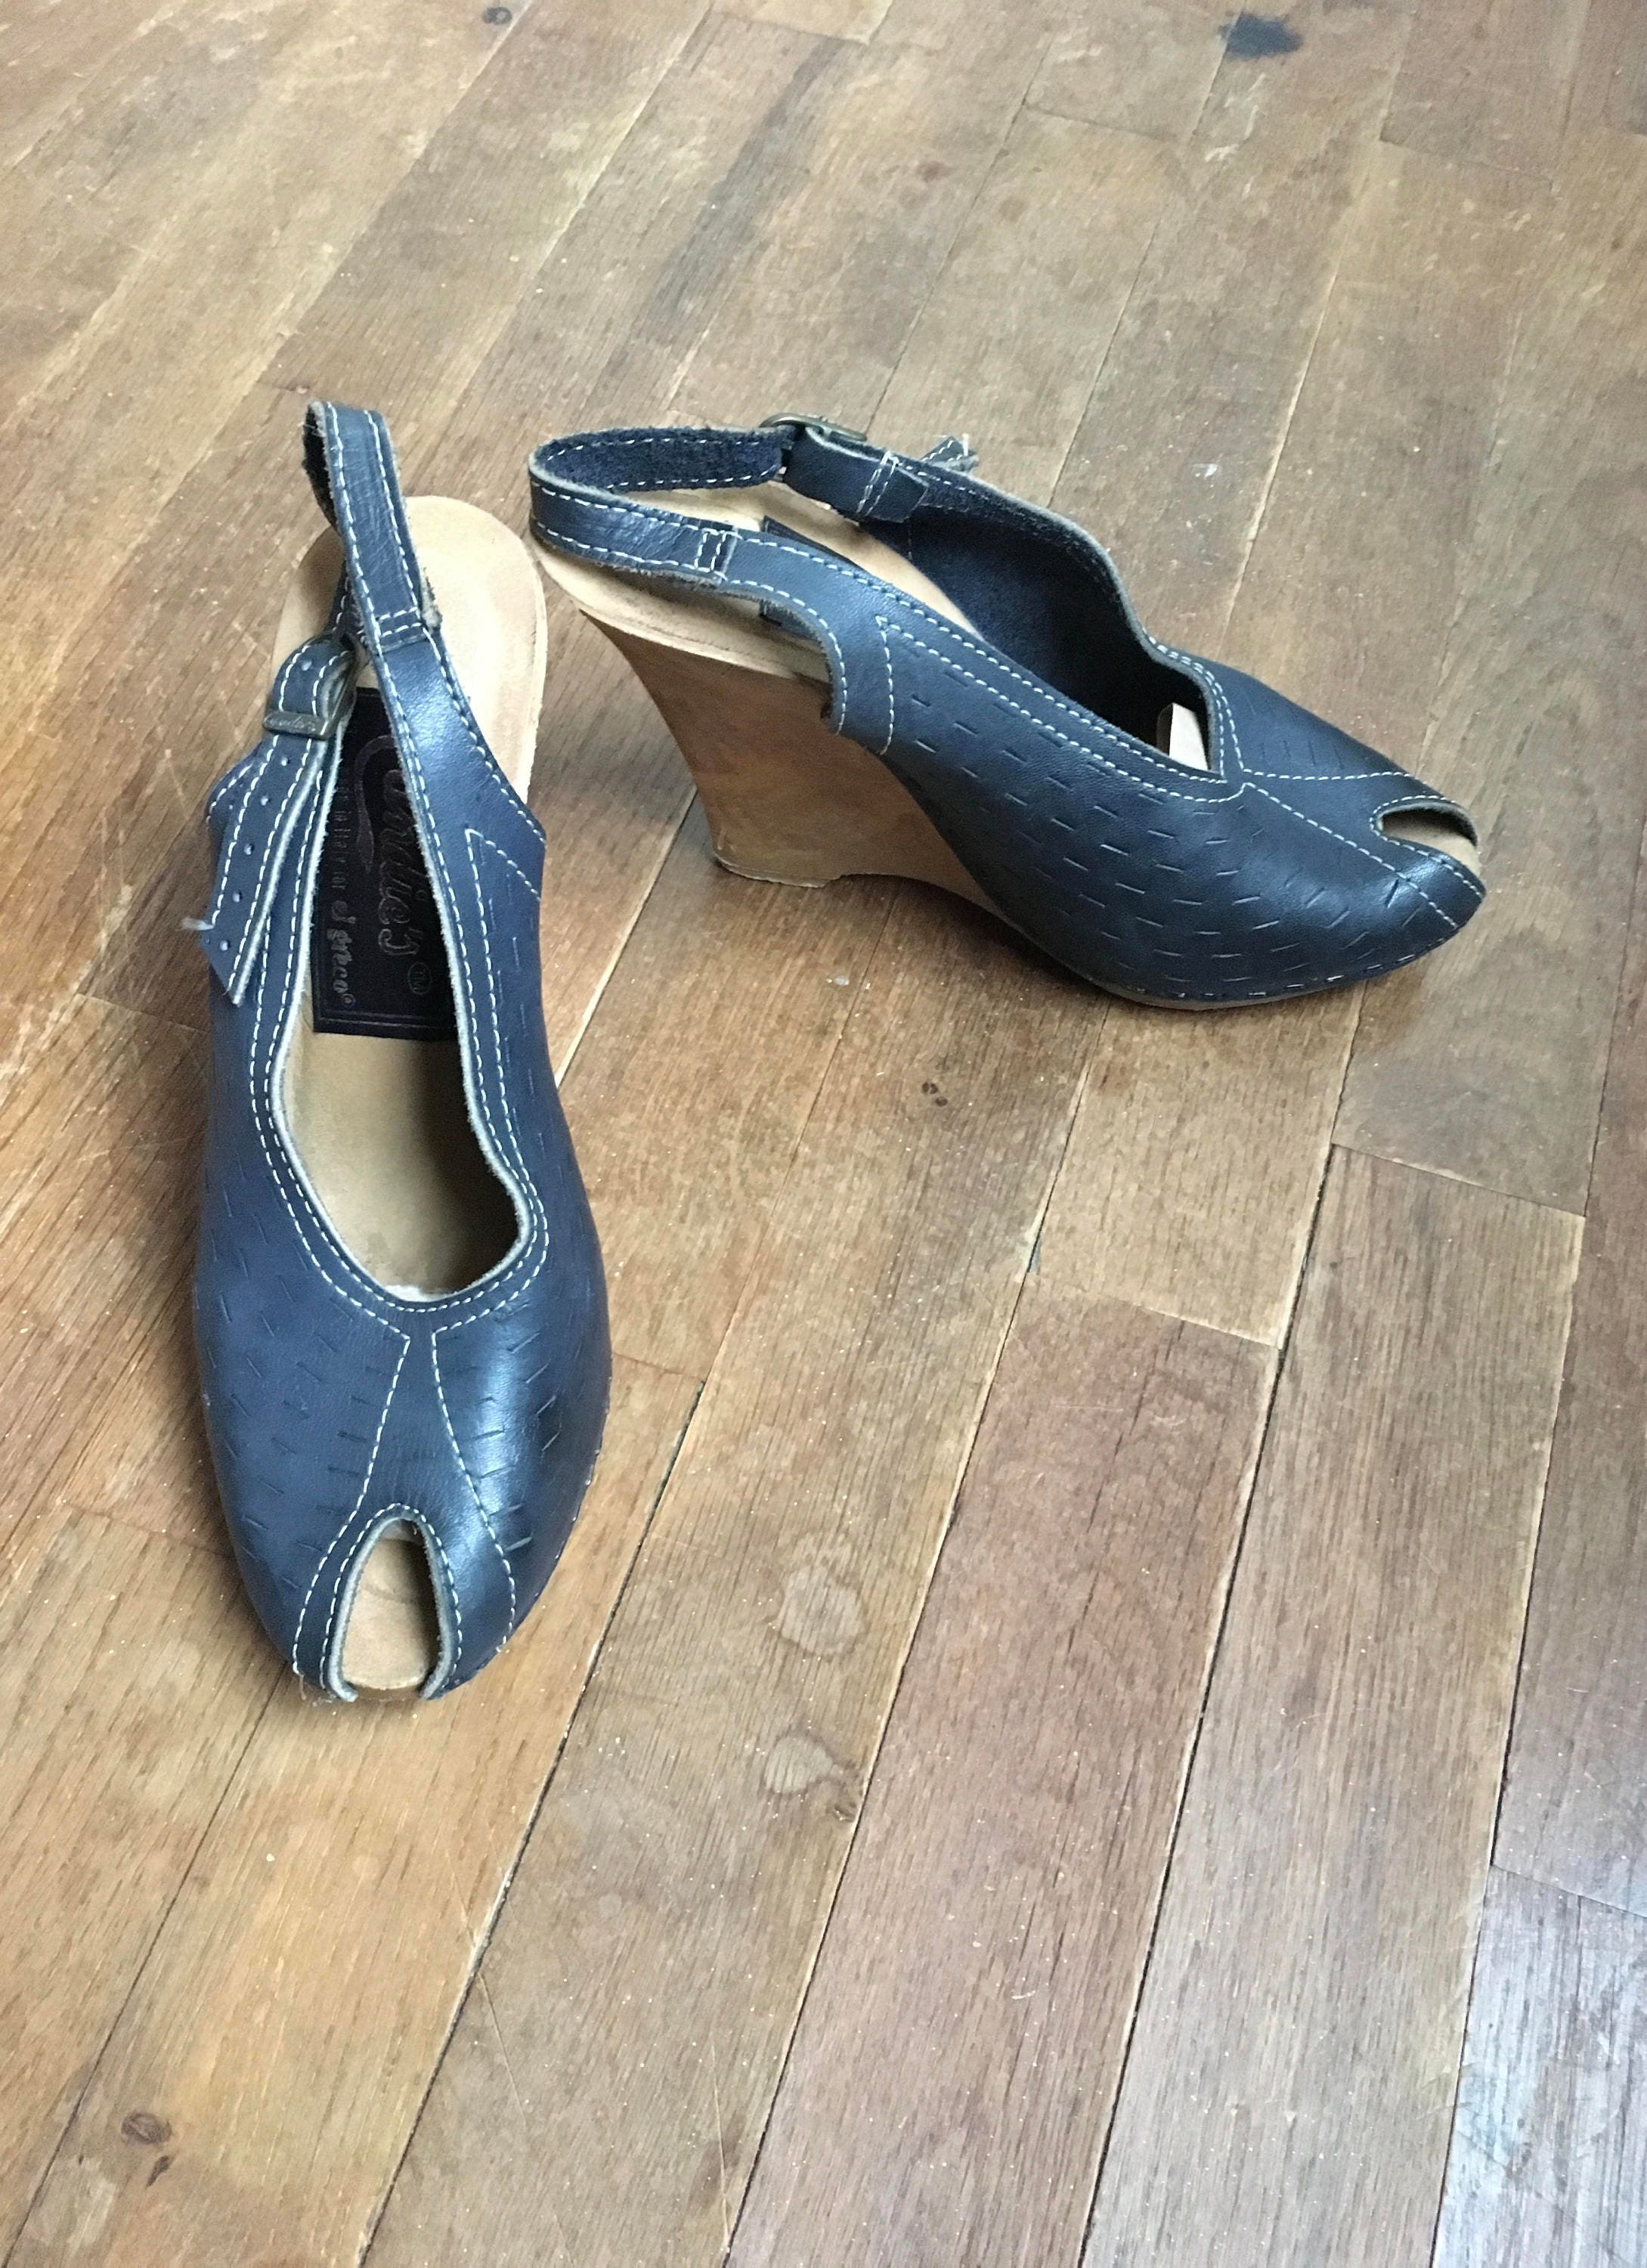 vintage 70s candies for el leather greco wooden heel blue leather el peep toe sling back womens shoes size 8 made in italy 30d84d